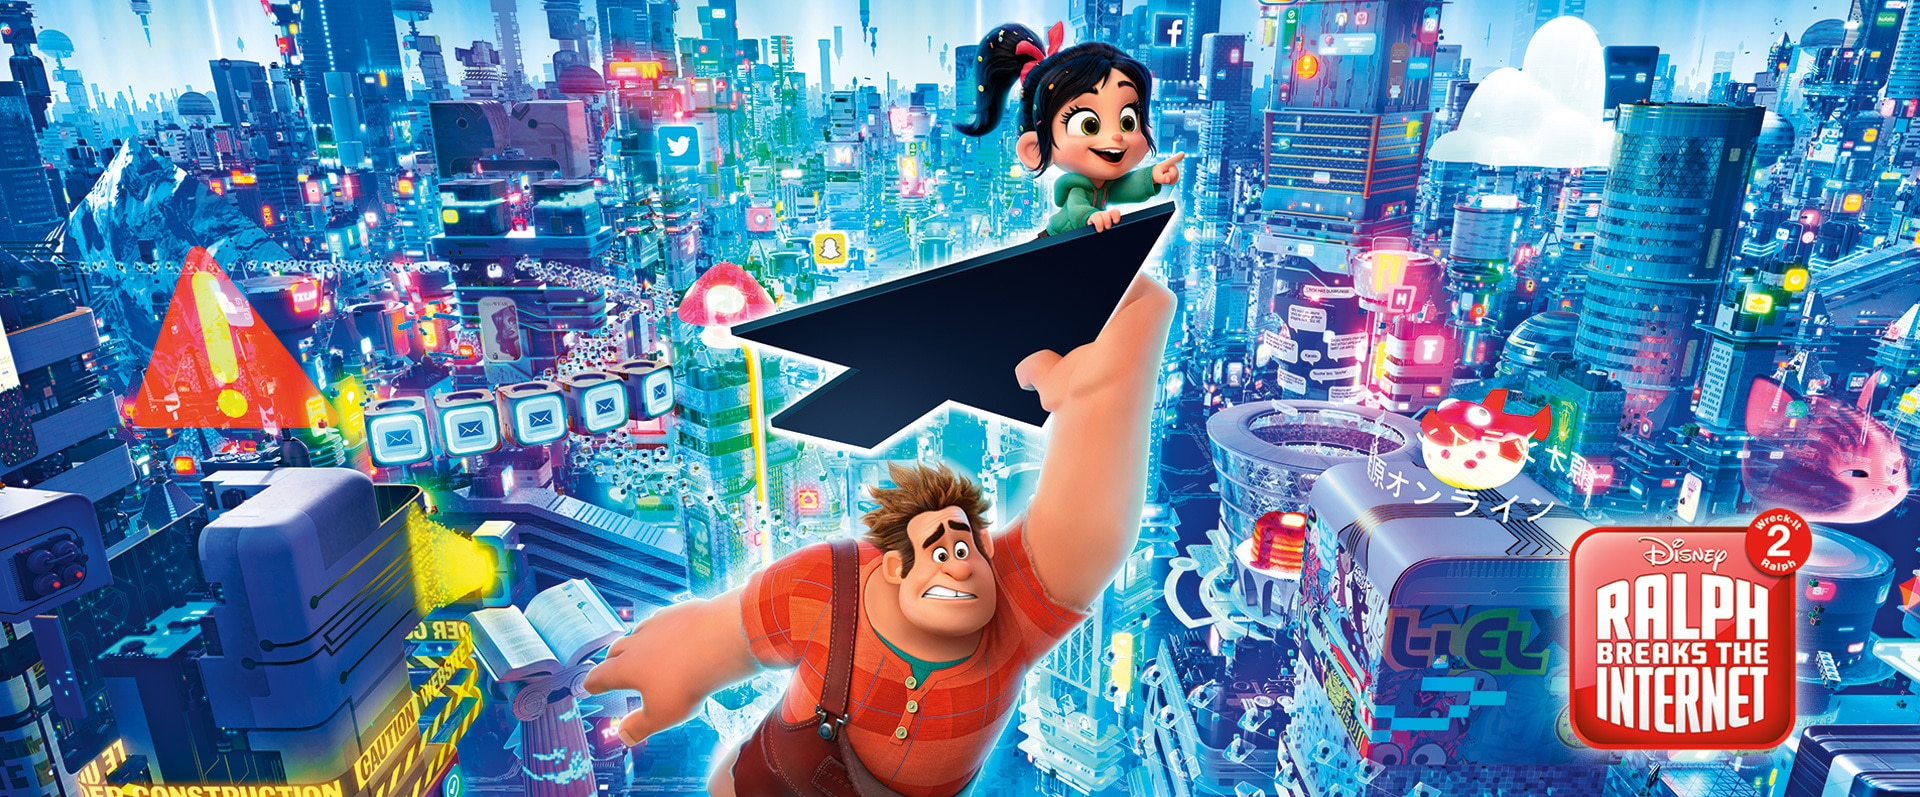 Ralph Breaks The Internet | Movies | Homepage | Disney